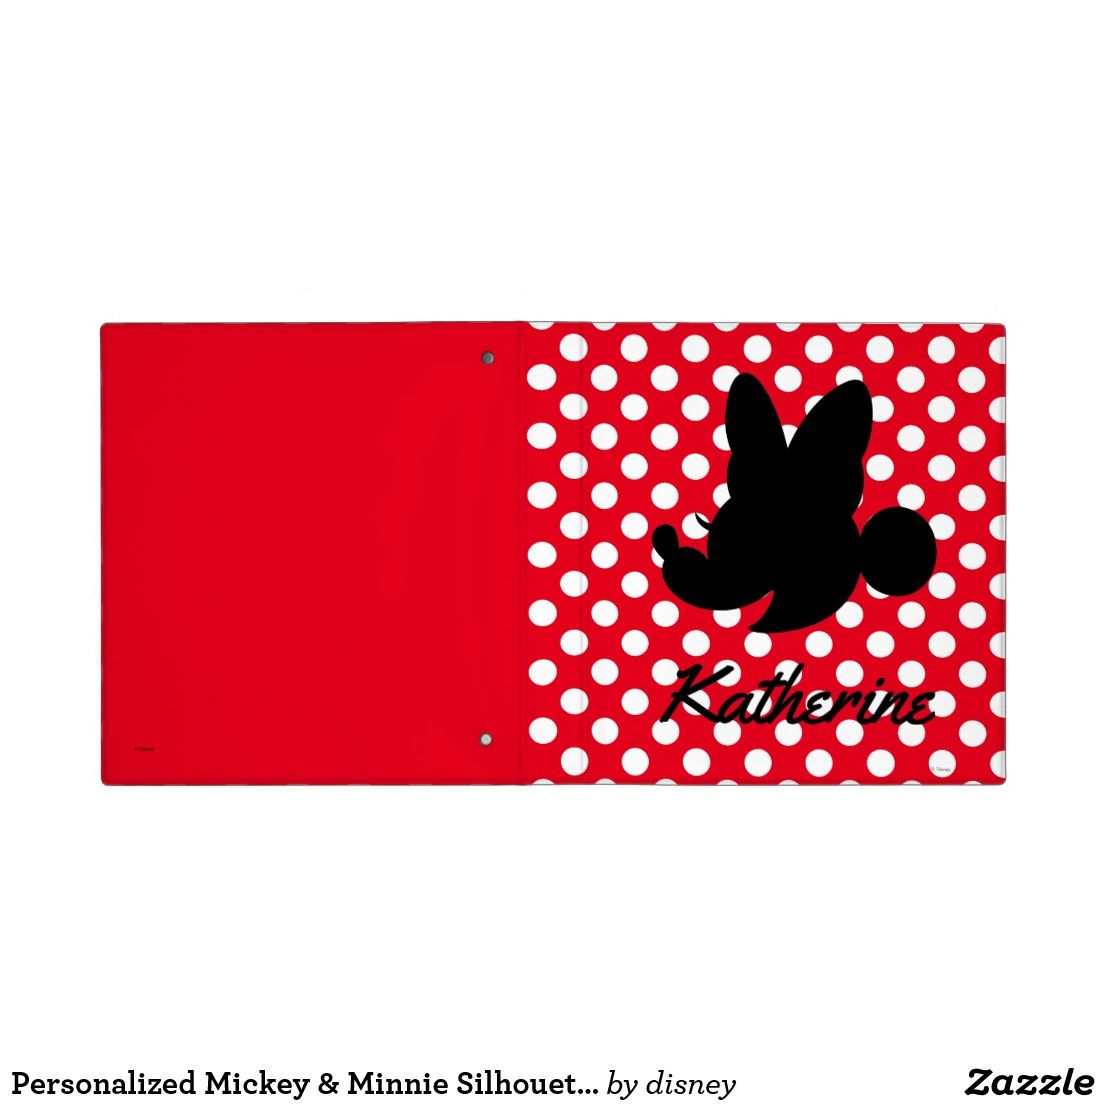 Personalized Mickey & Minnie Silhouette 3 Ring Binder | Zazzle With Recent Disney Minnie Silhouette Rings (Gallery 18 of 25)